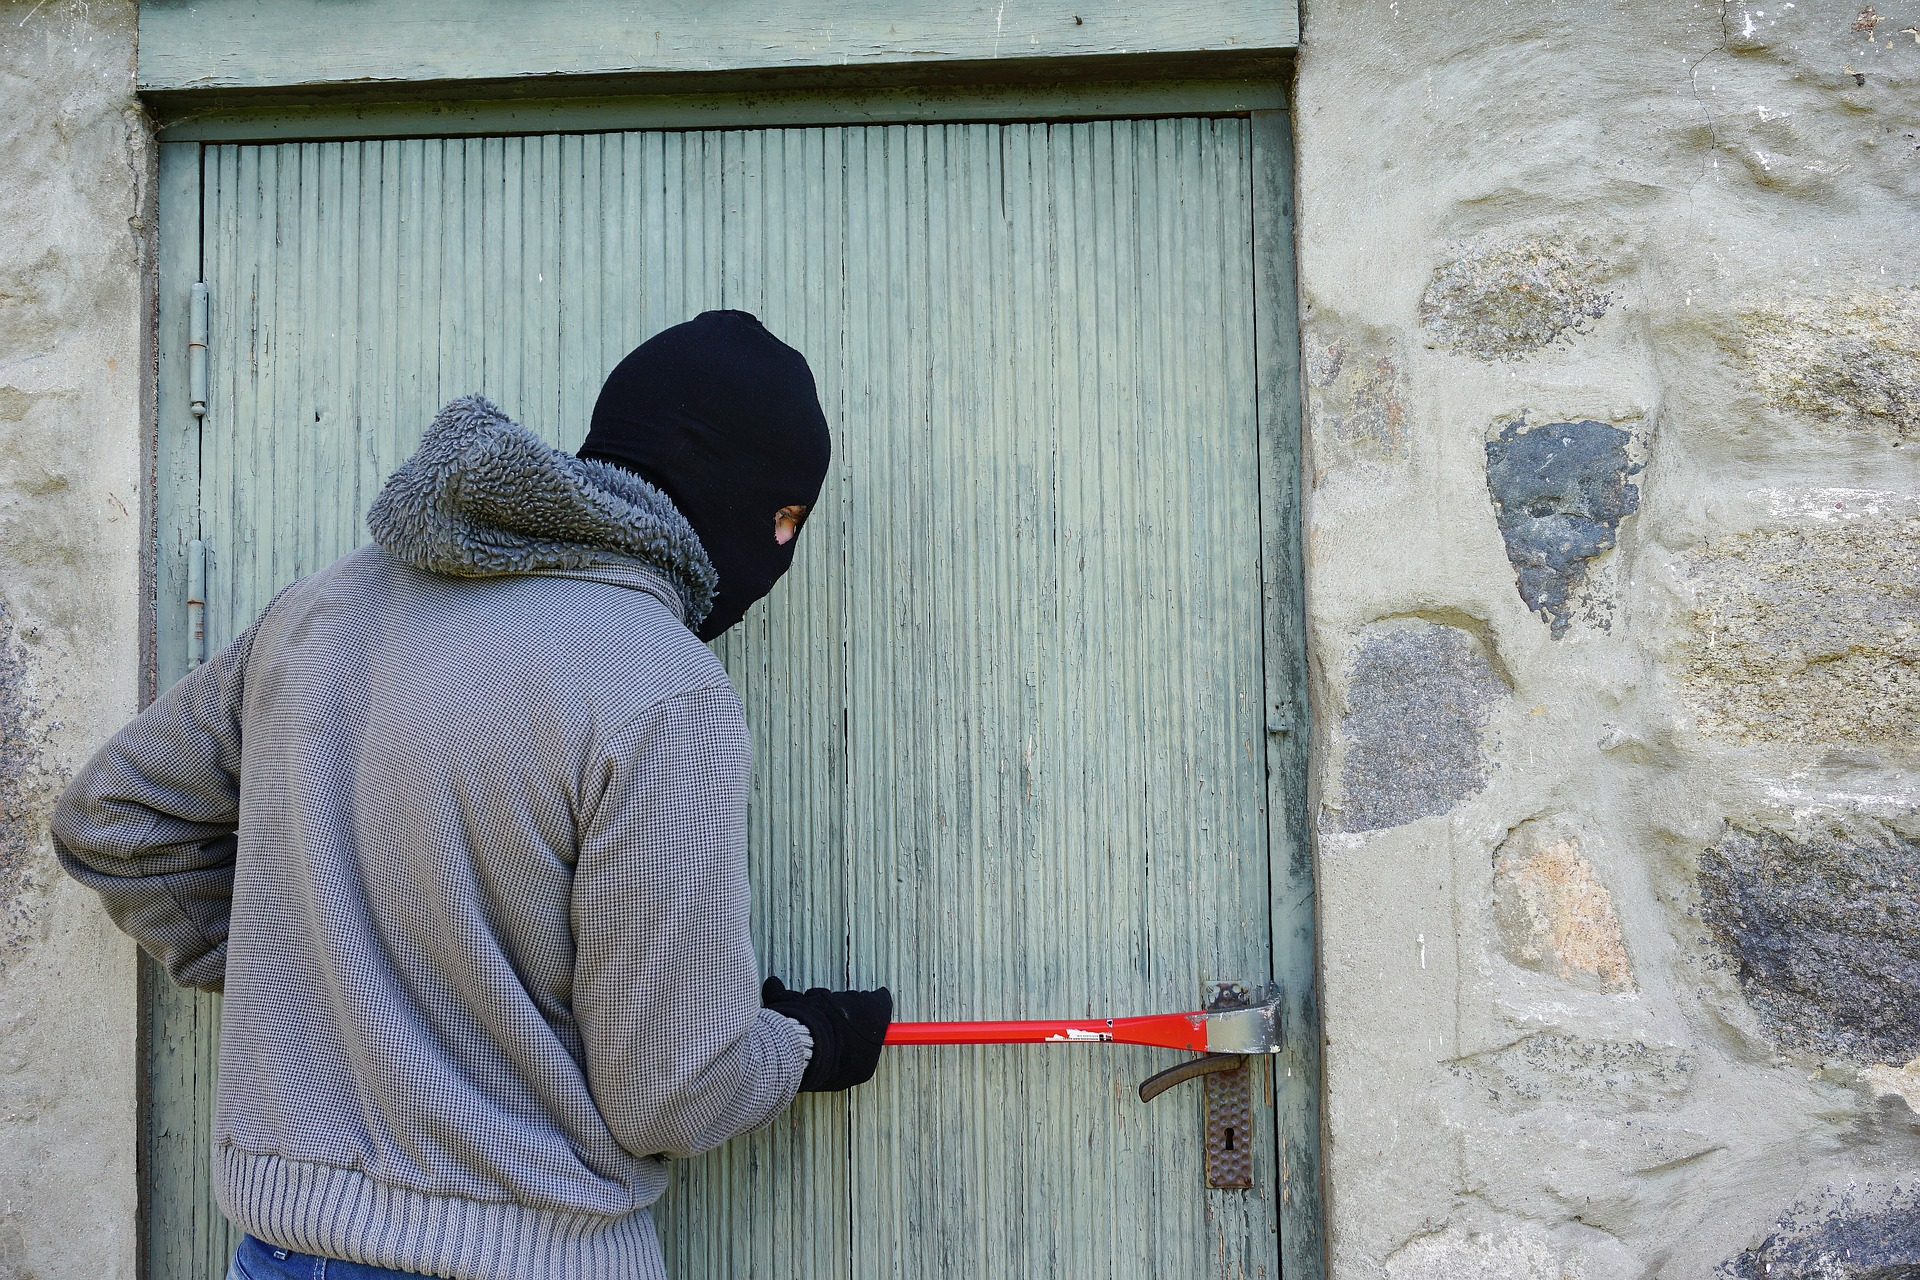 Don't be complacent when it comes to home security